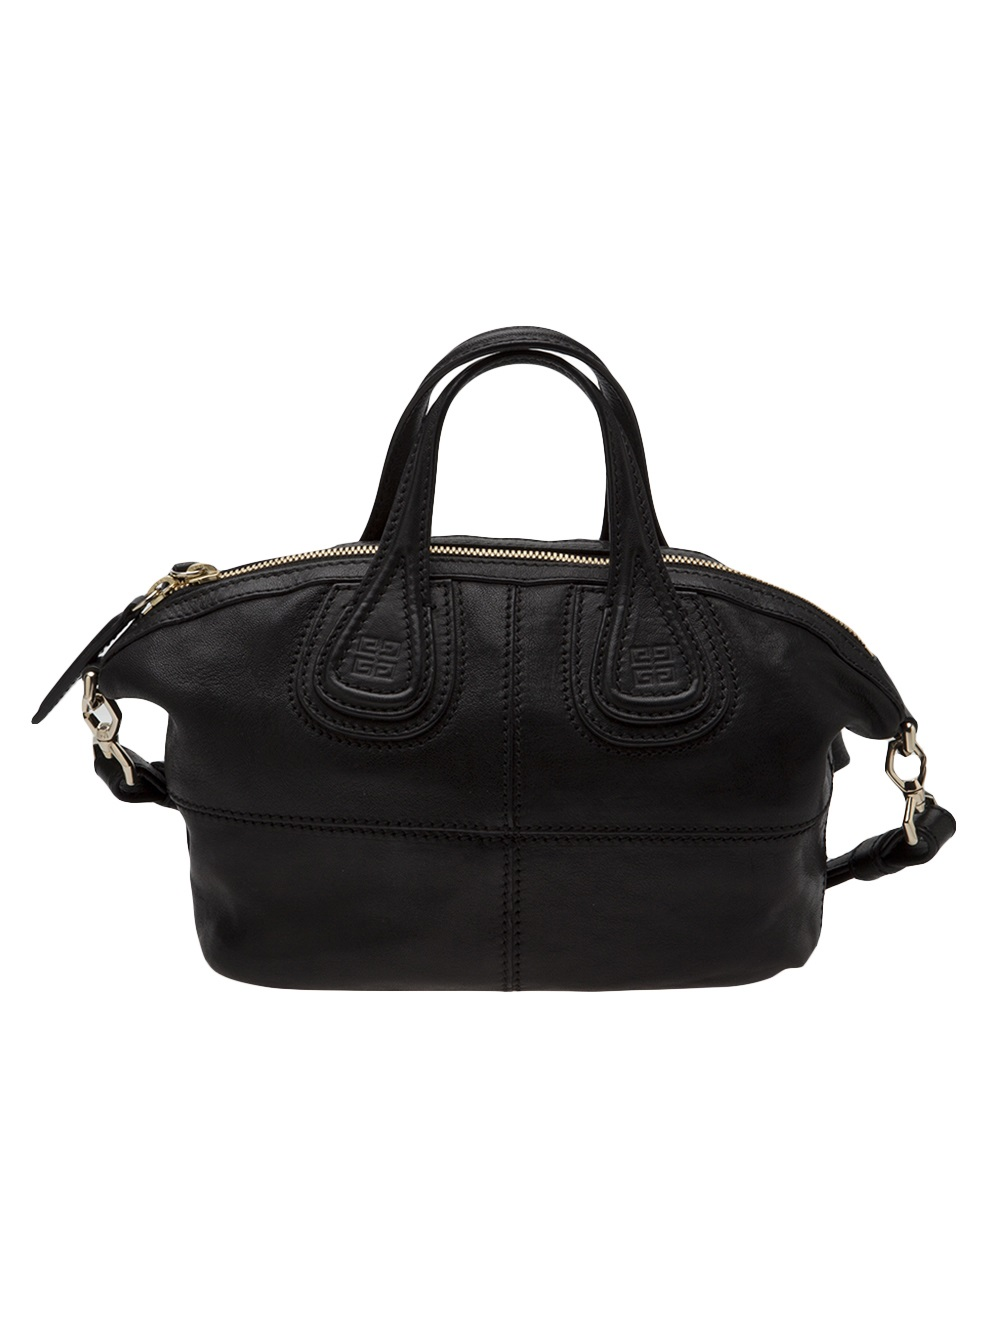 givenchy nightingale bag in black